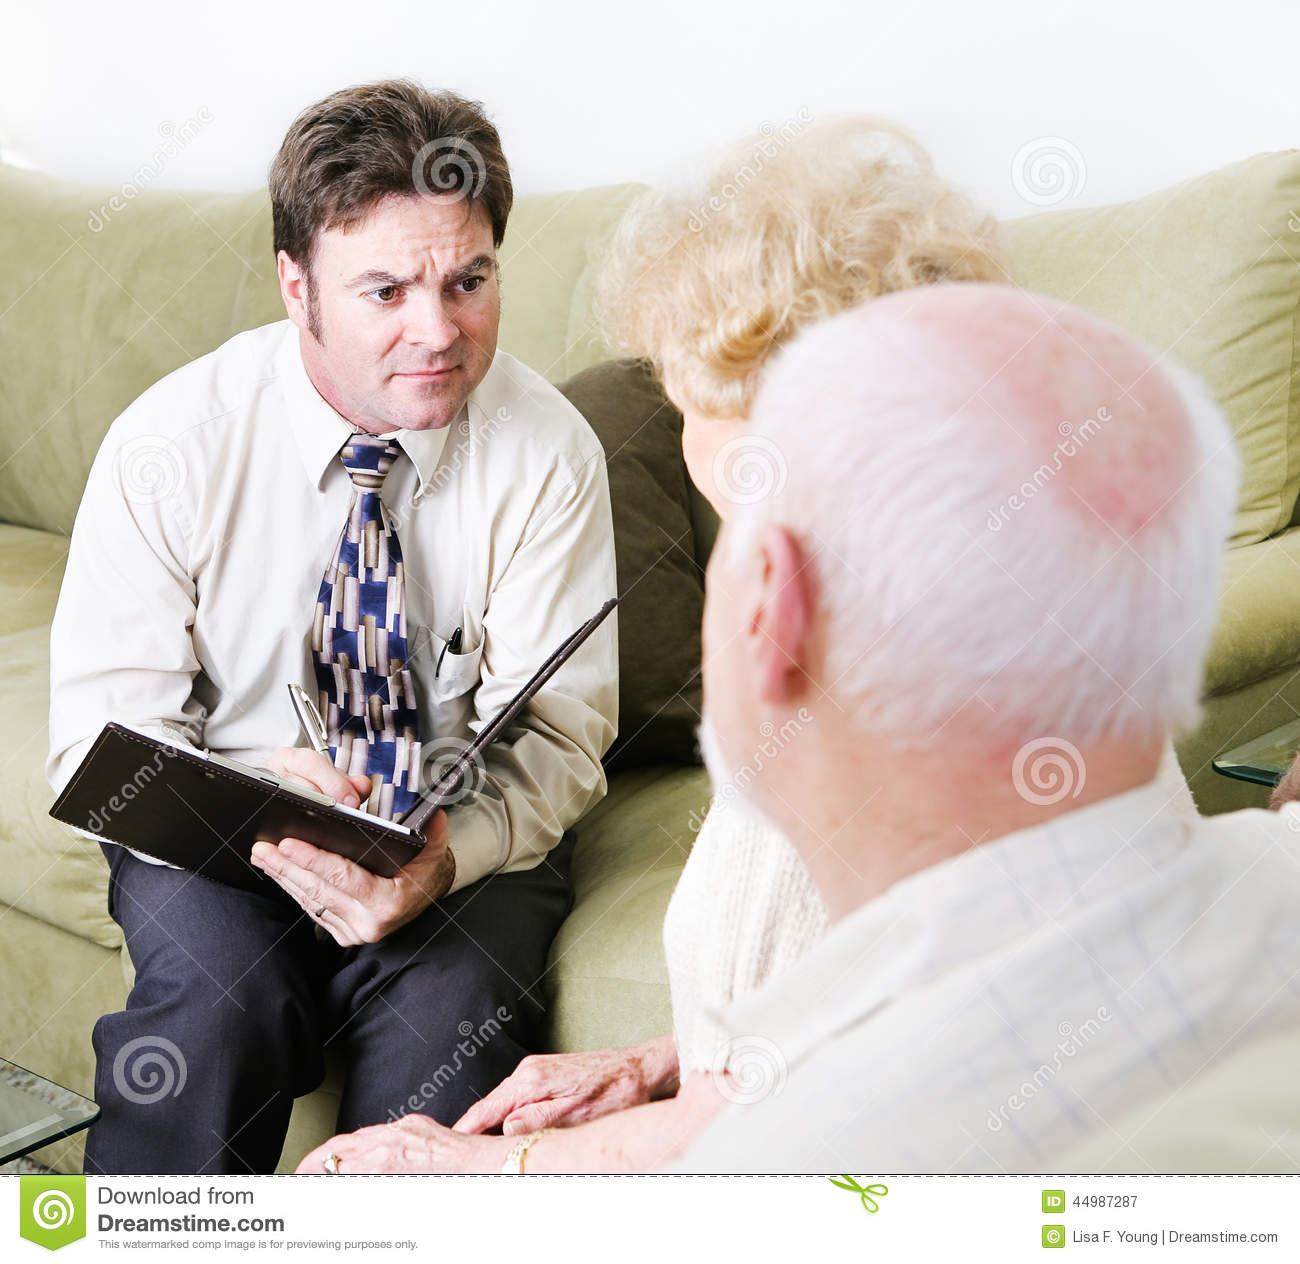 Couples Counseling - Empathy